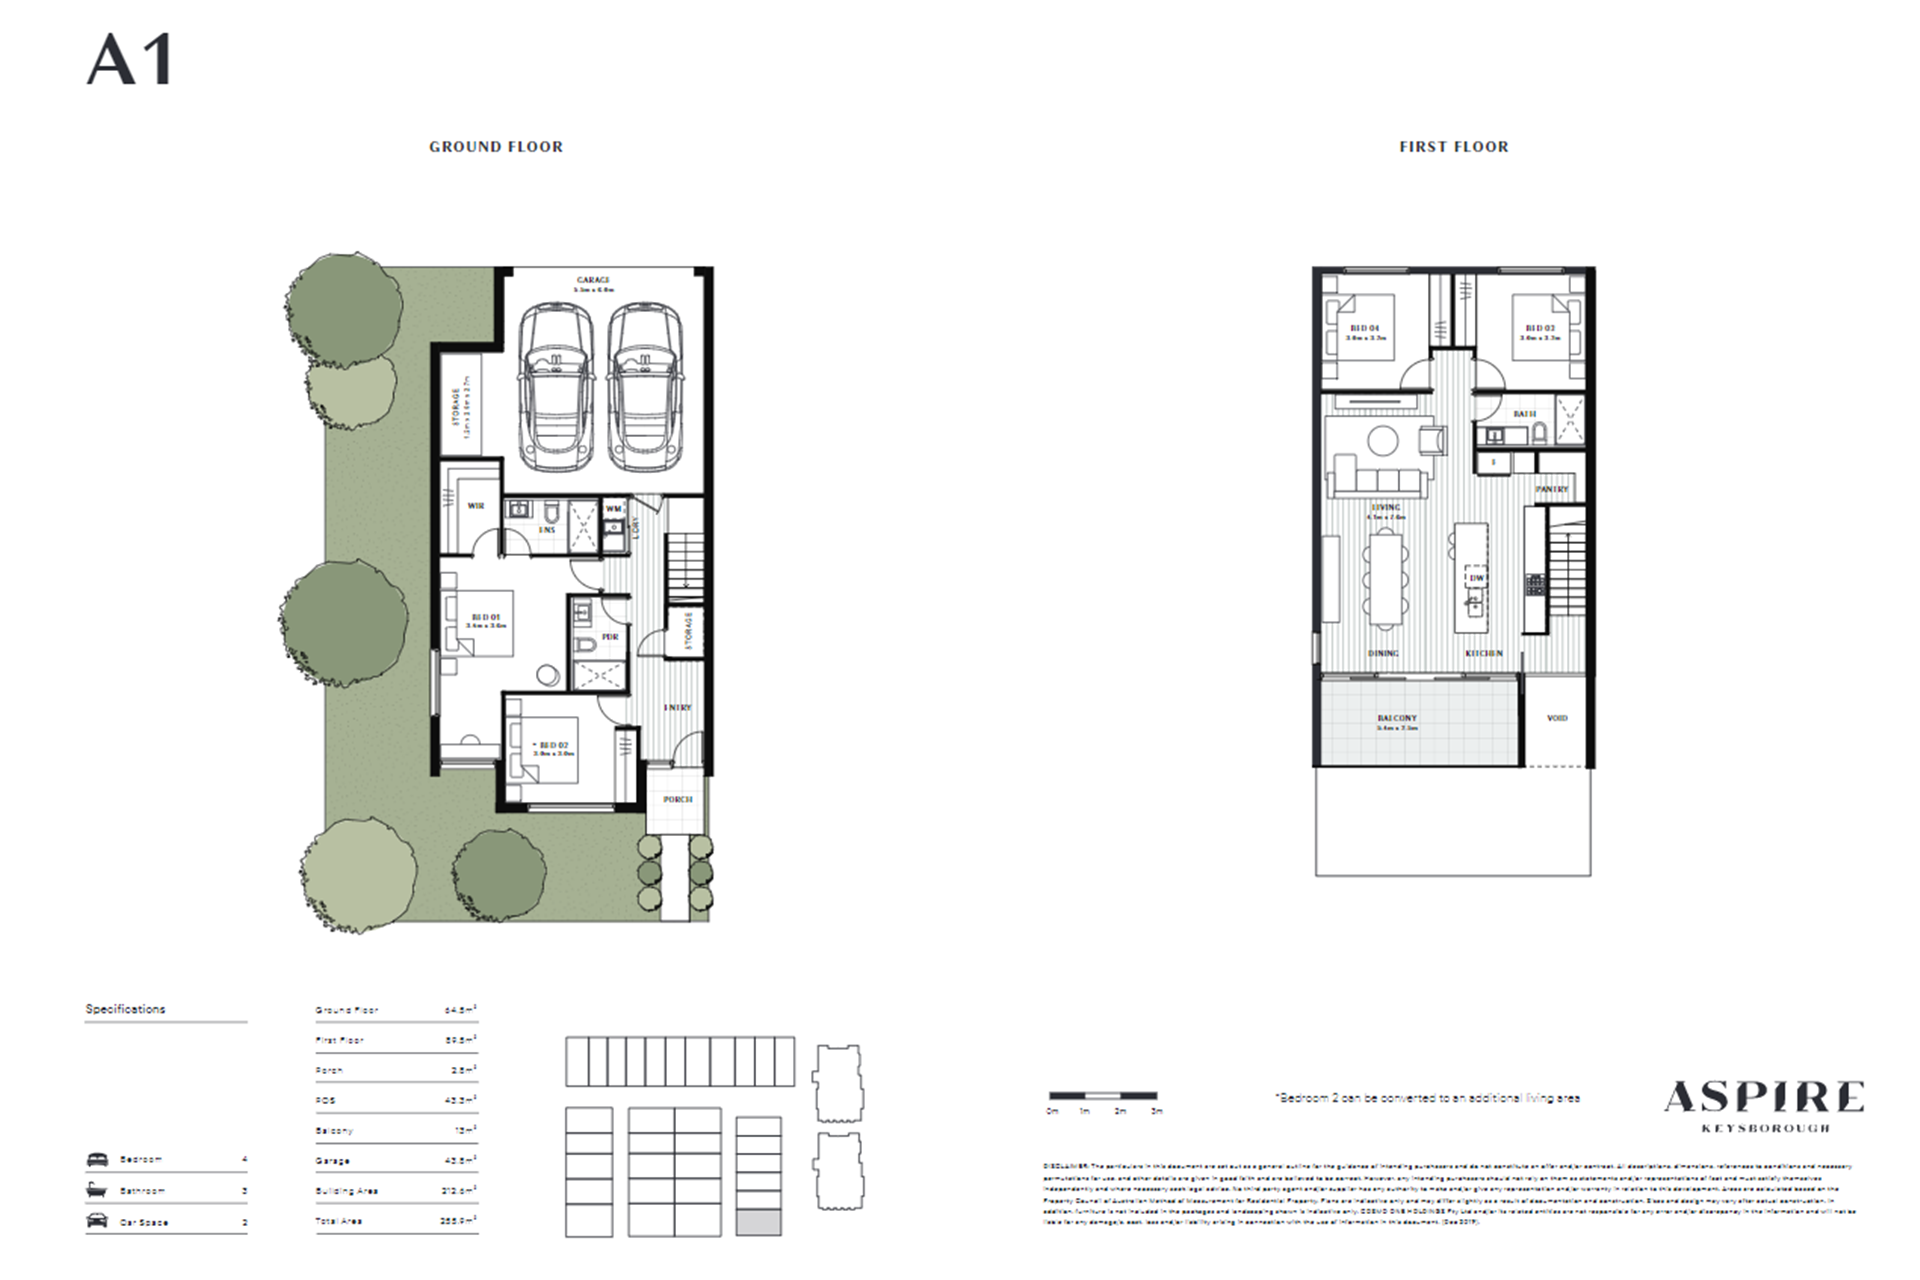 Aspire   A1 Floor Plan (Townhouse)